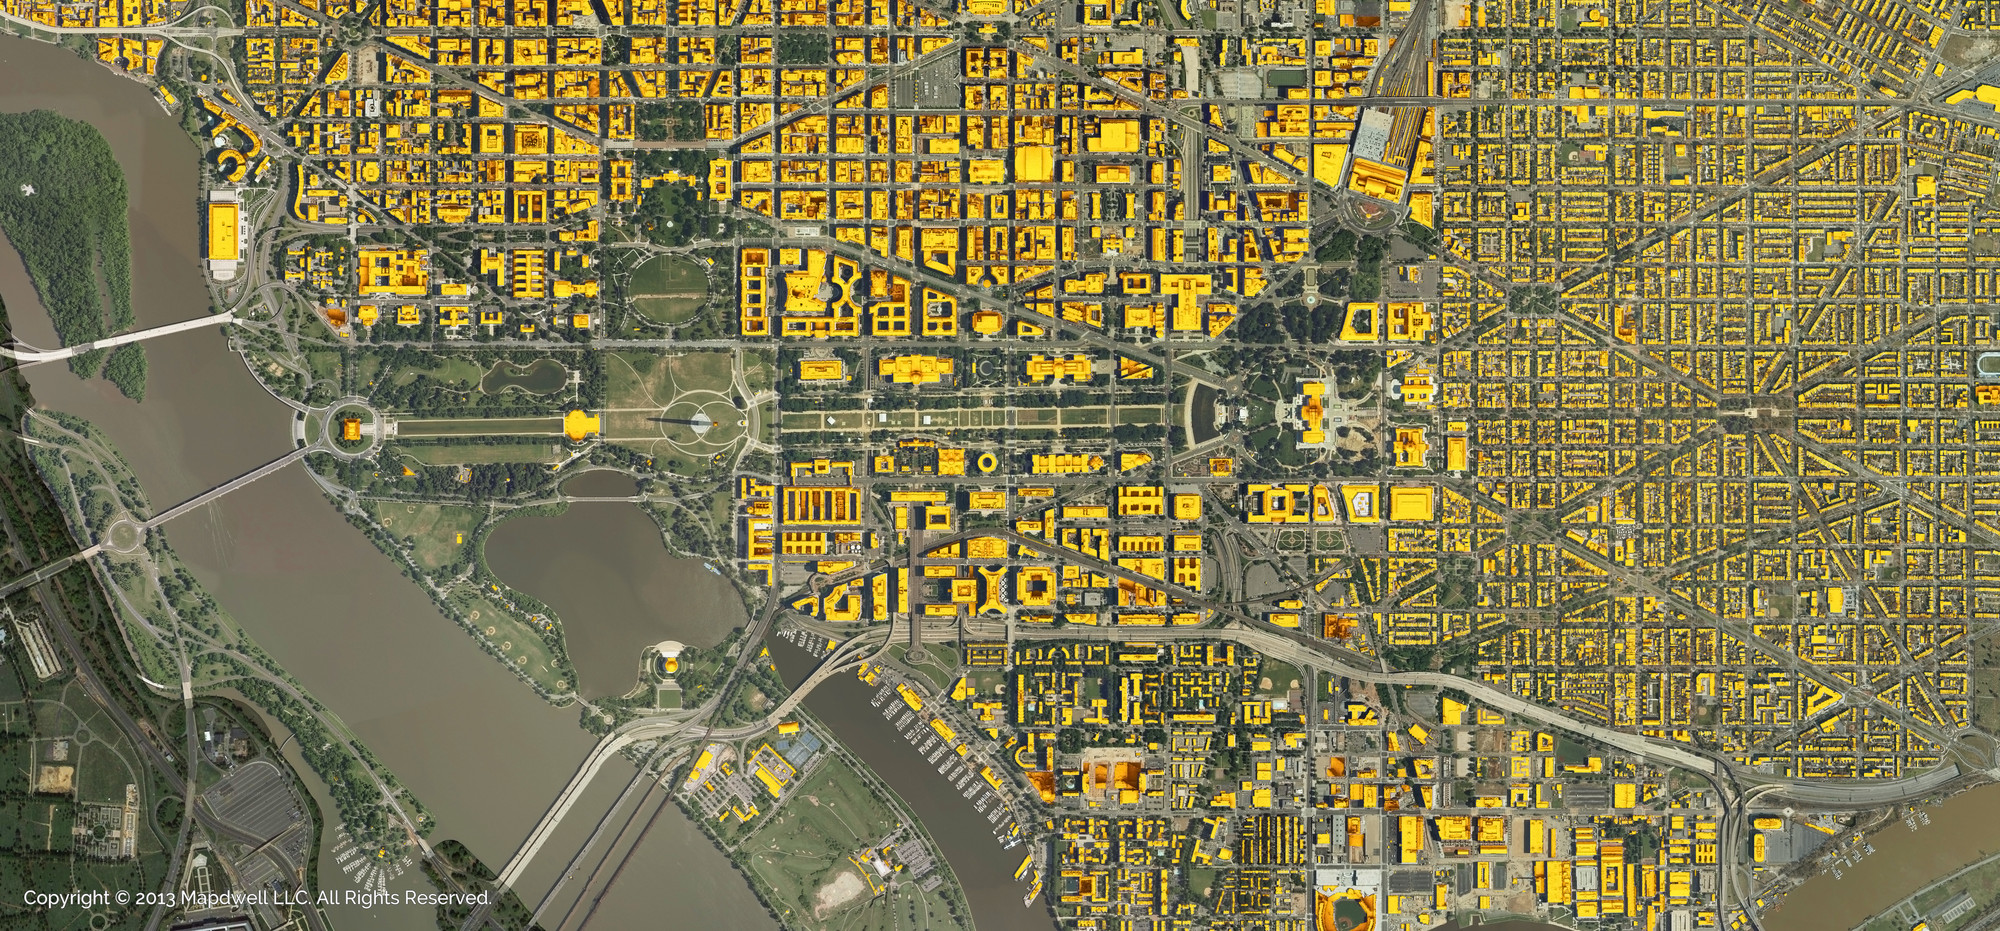 Mapdwell Expands to Washington D.C., National Mall. Image © Mapdwell